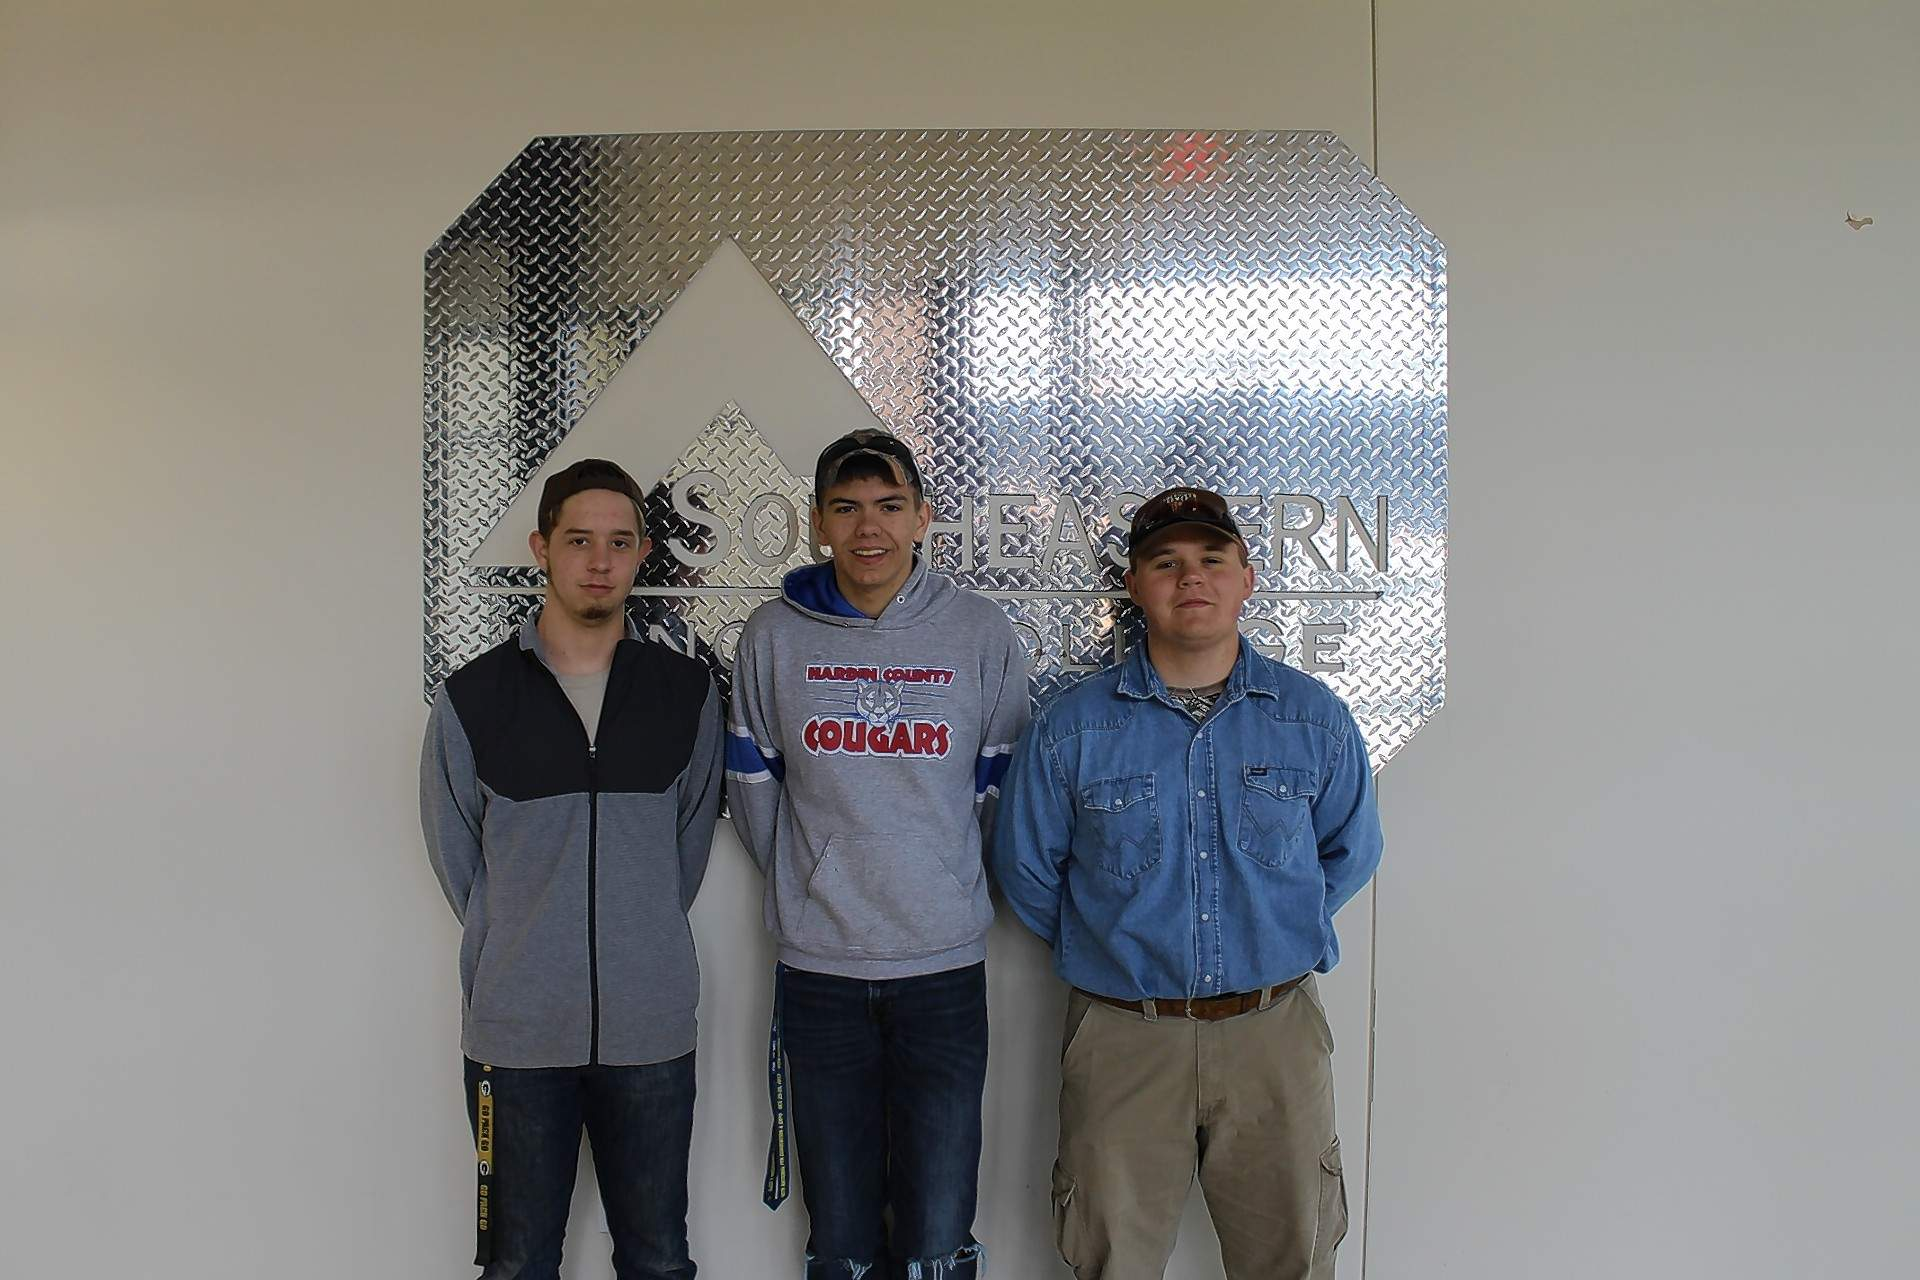 Hardin County High School's FFA Chapter participated at the 2018 FFA Section 25 Ag Mechanics Competition at Southeastern Illinois College. Pictured are (not in order): Gage Hawes, Ryder Flener and Jonathan Foster.